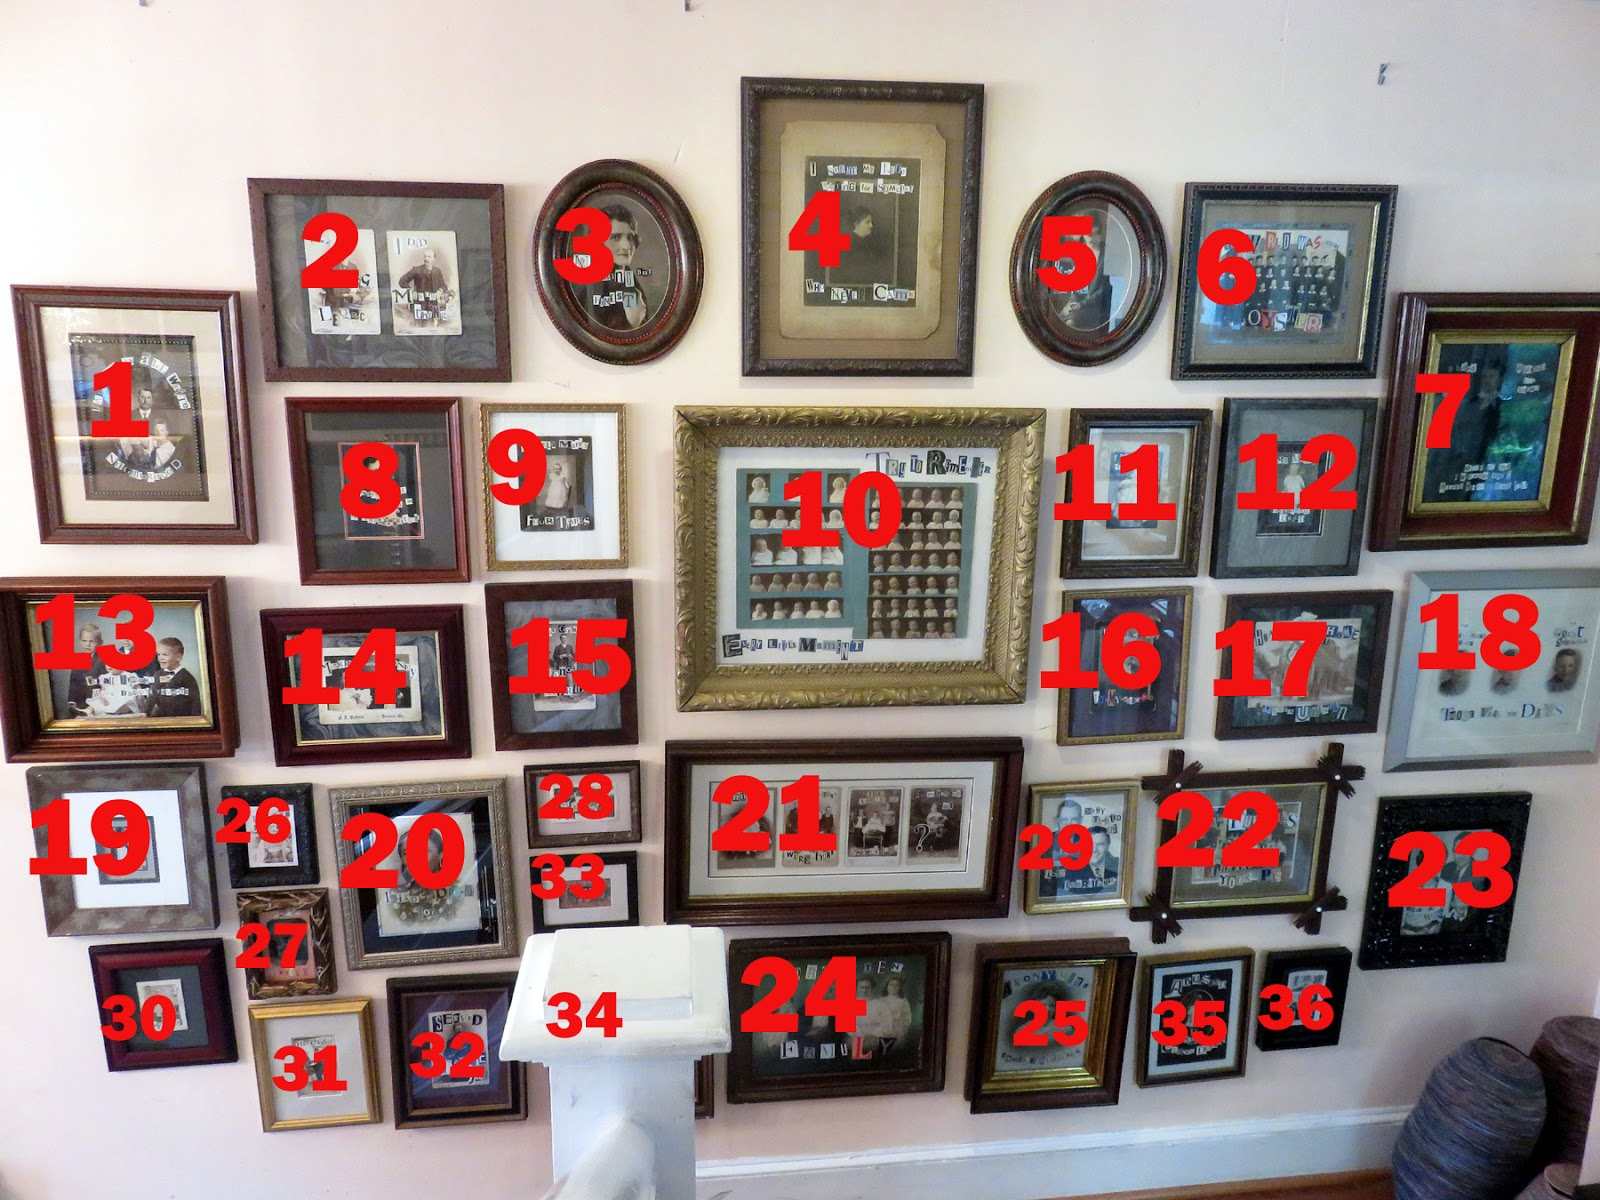 Art In Stitches: Ironic Designs at the Gadsden Museum of Art in Alabama